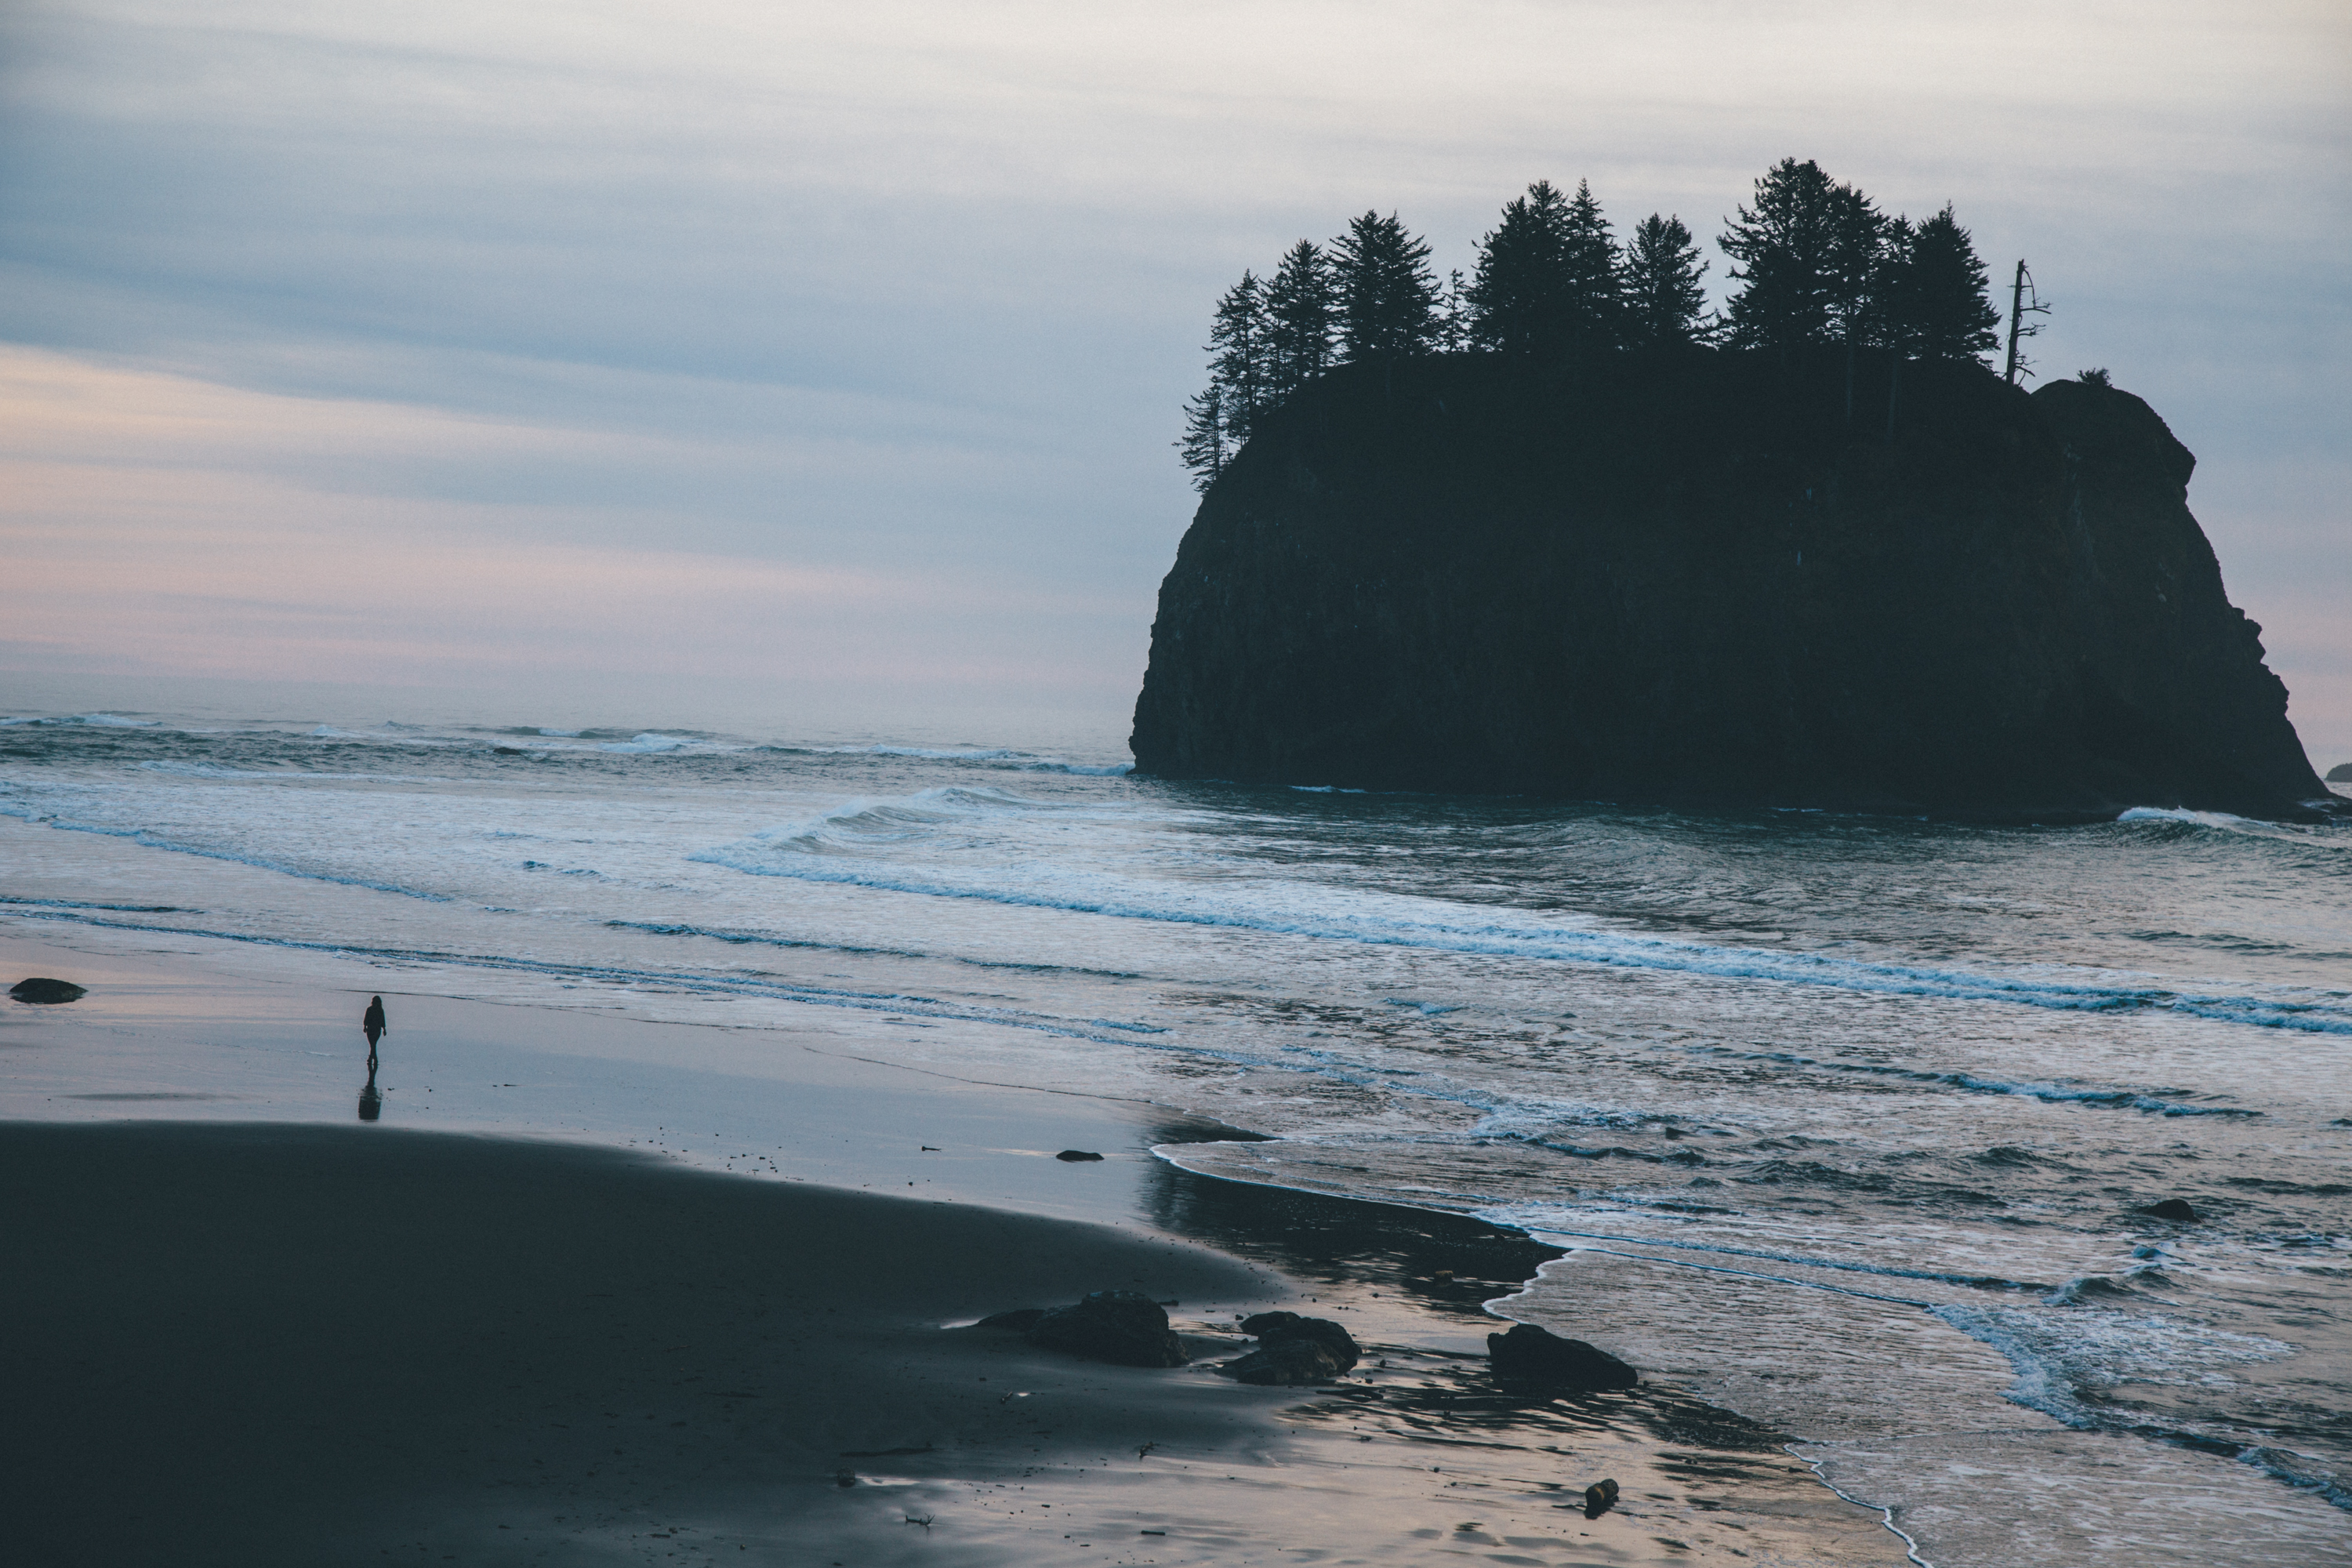 Beach-second-beach-olympic-national-park-washington-sunset-waves